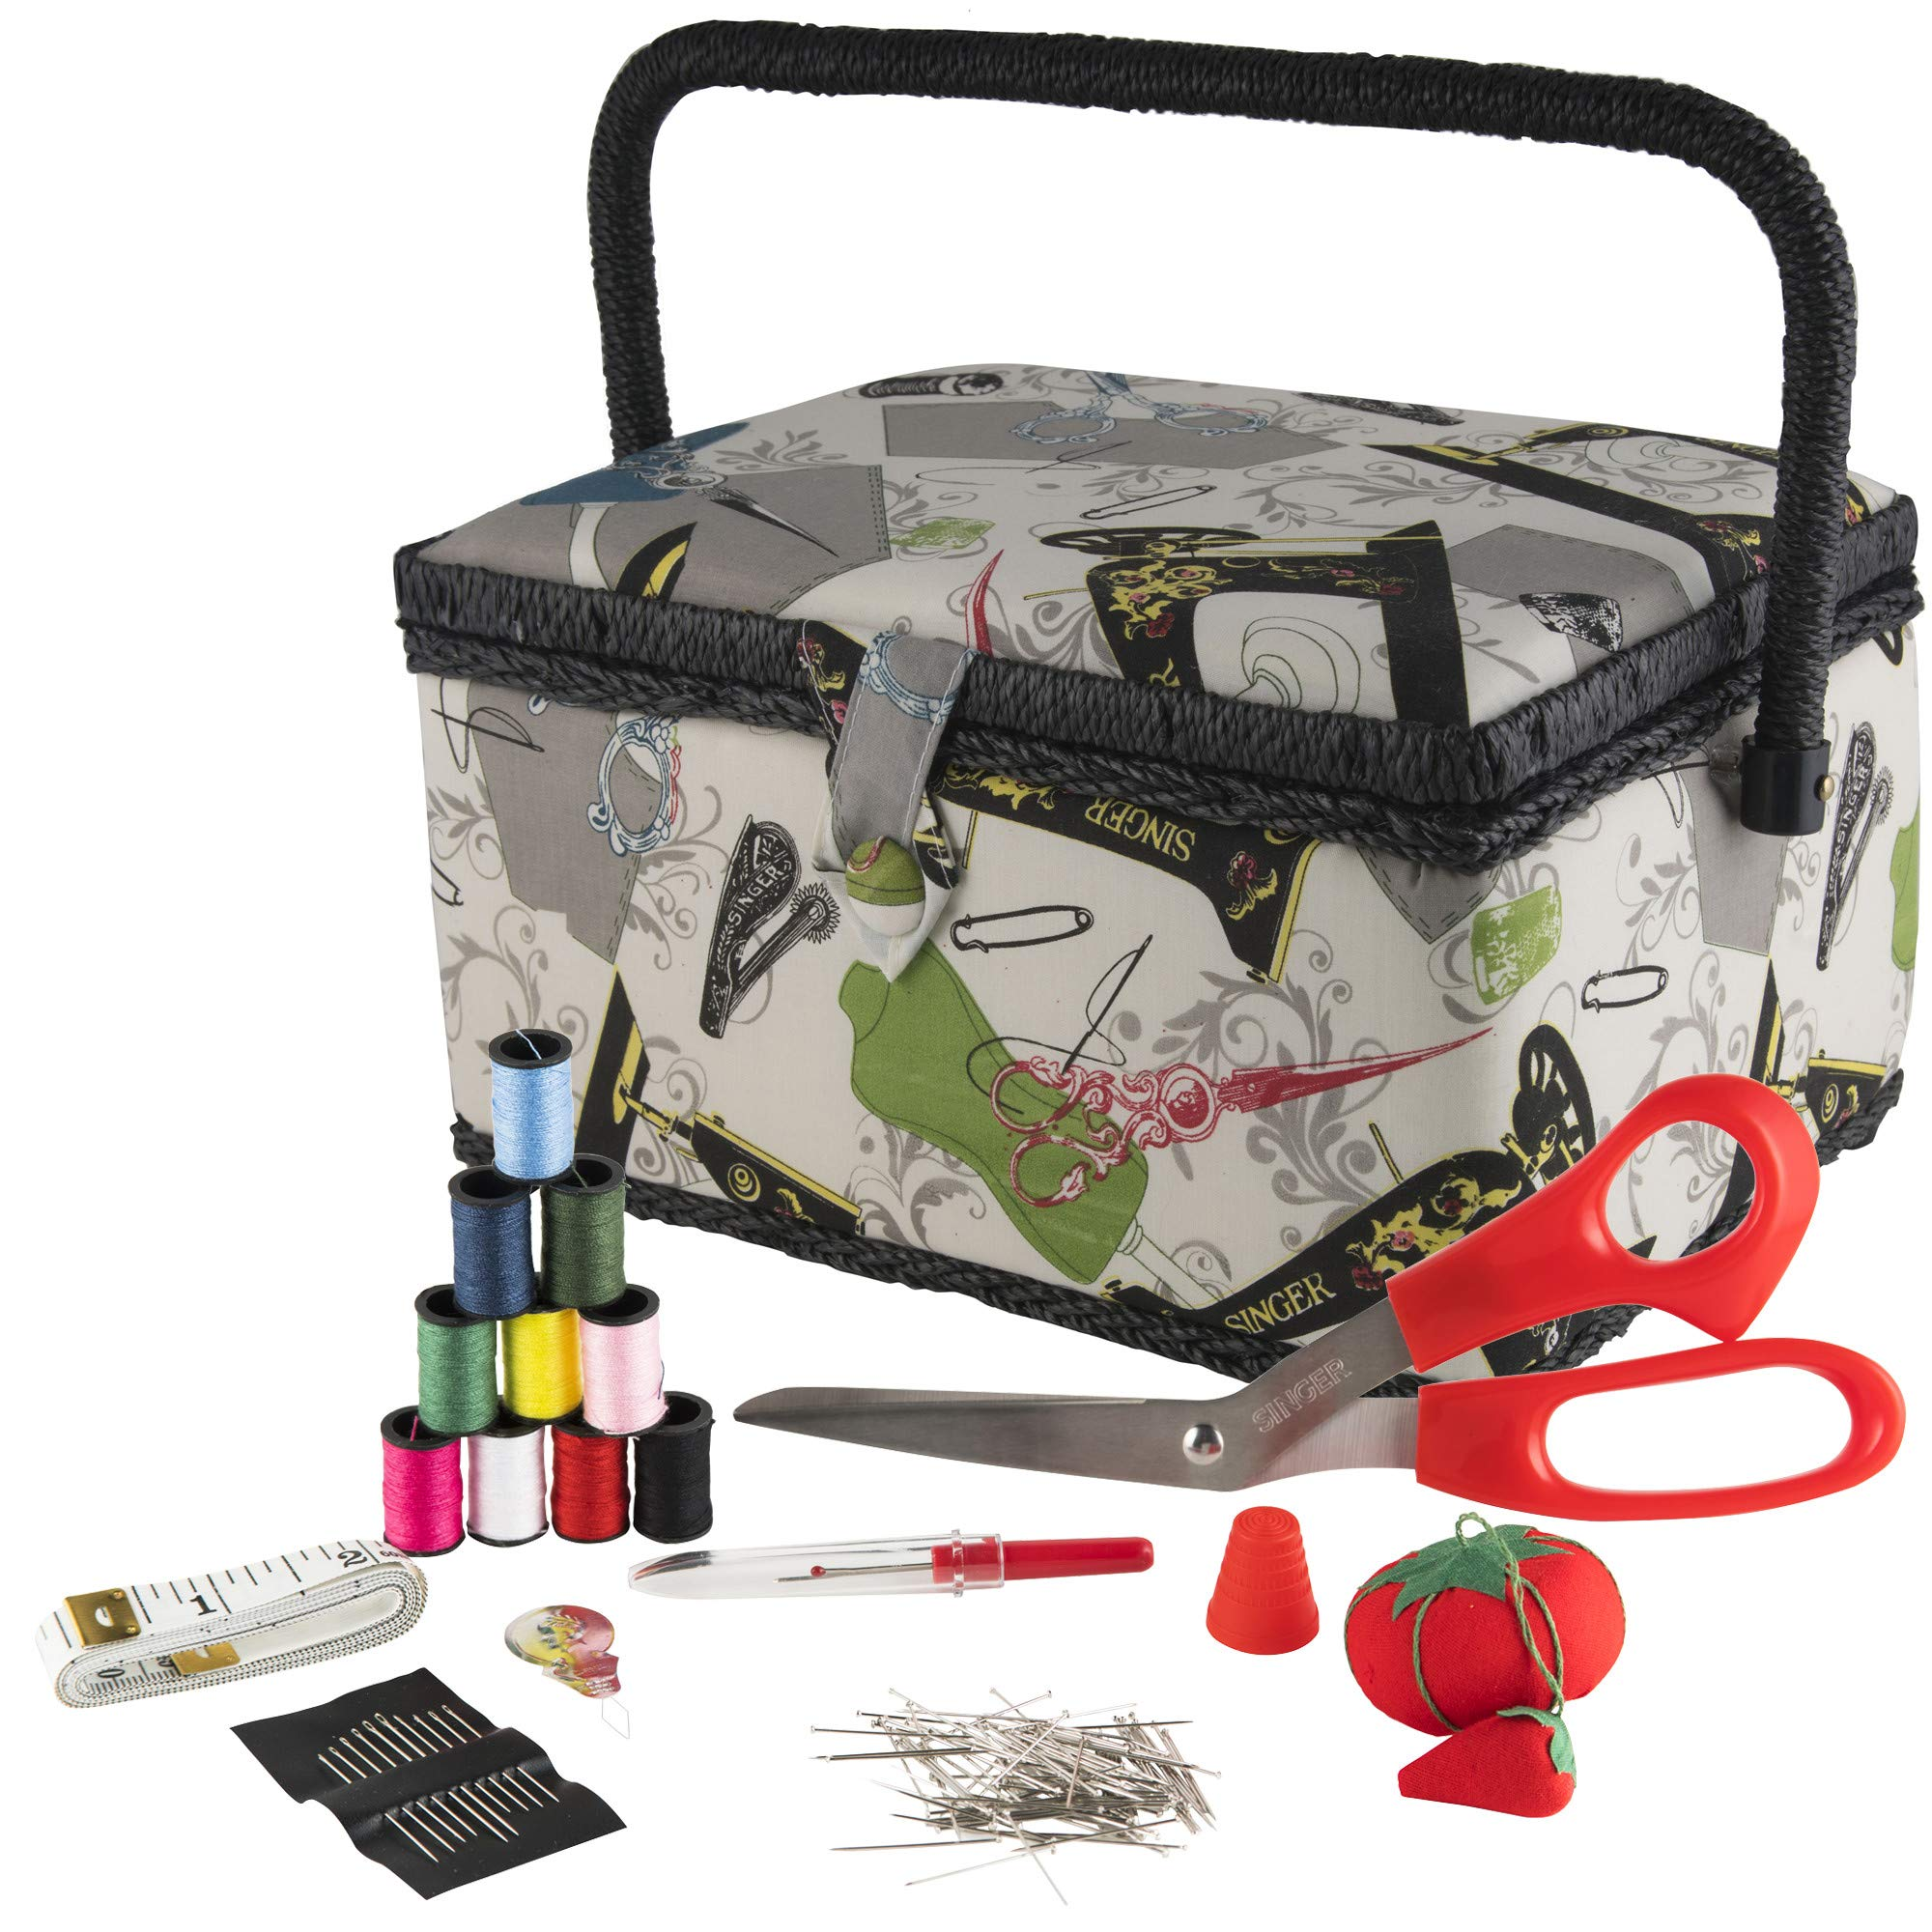 SINGER 07281 Vintage Sewing Basket with Sewing Kit Accessories by SINGER